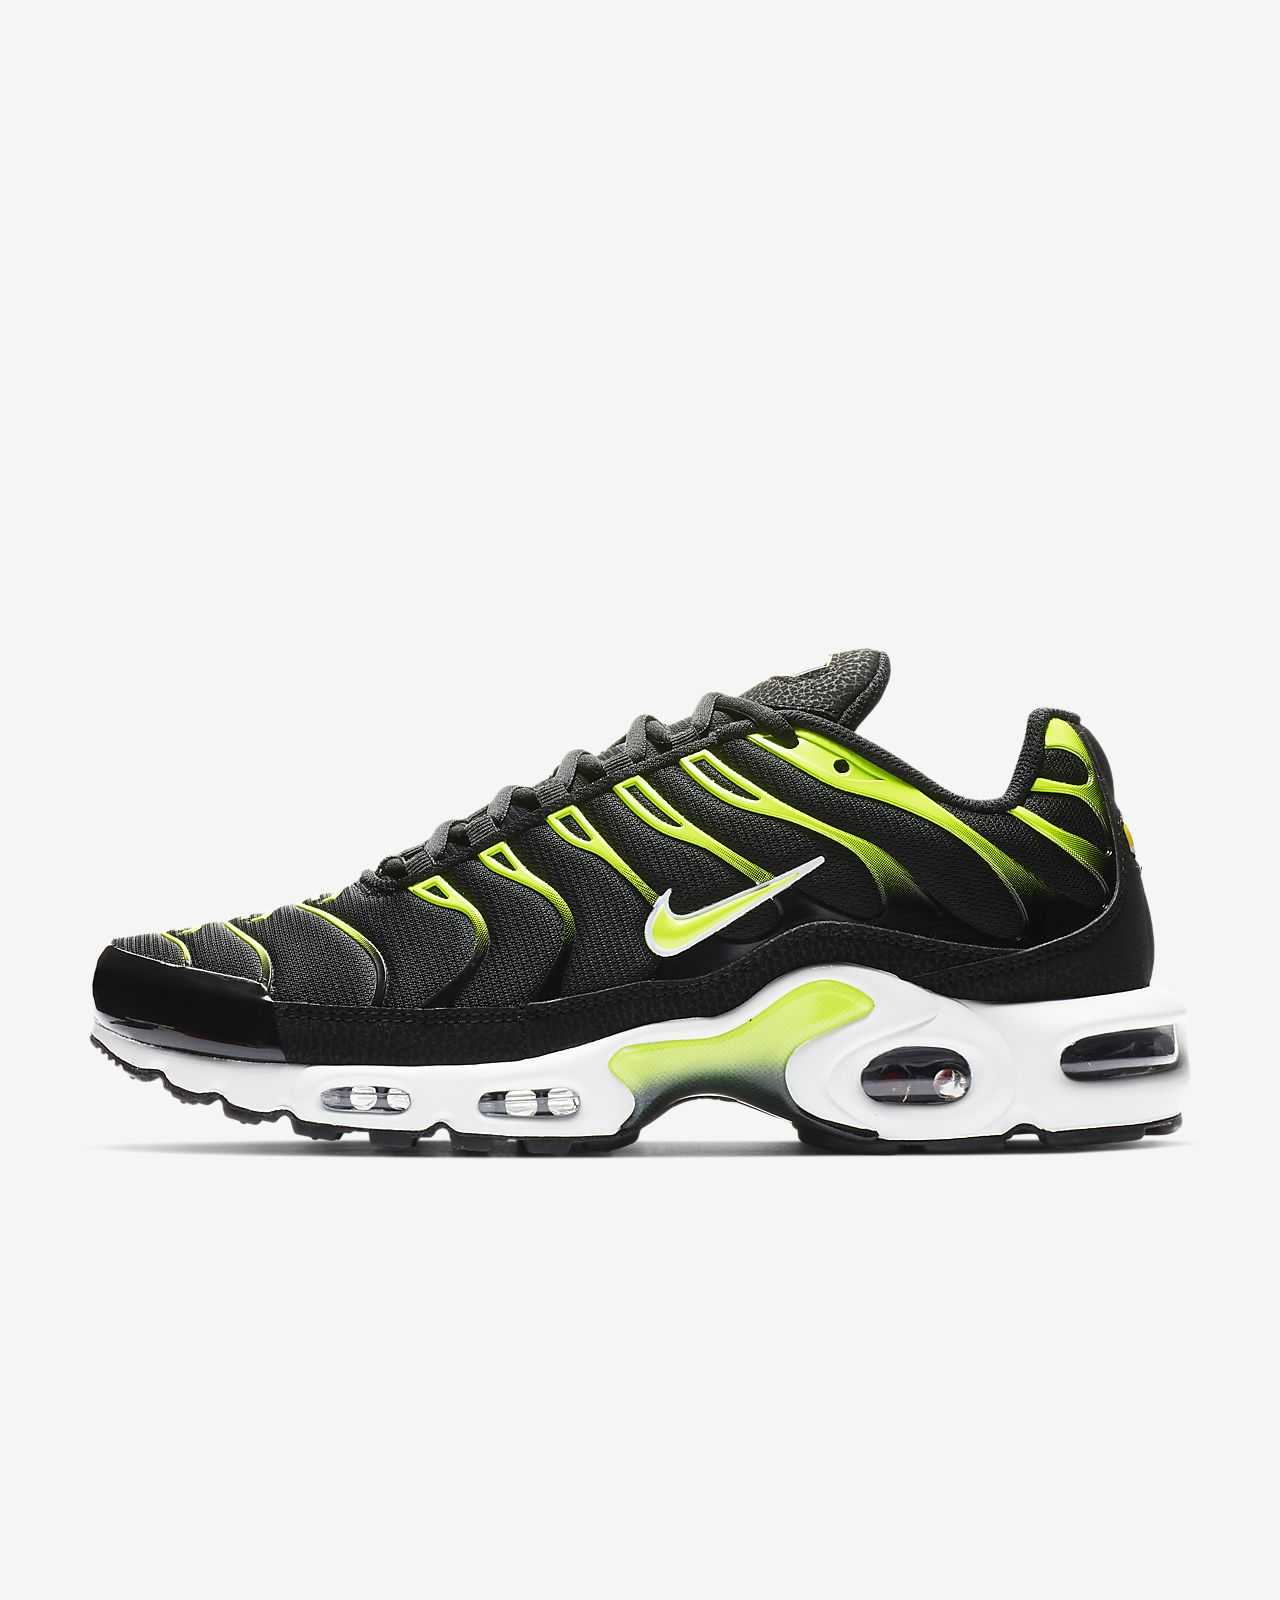 d3d2cf8eaa5e29 Nike Air Max Plus Men s Shoe. Nike.com CA